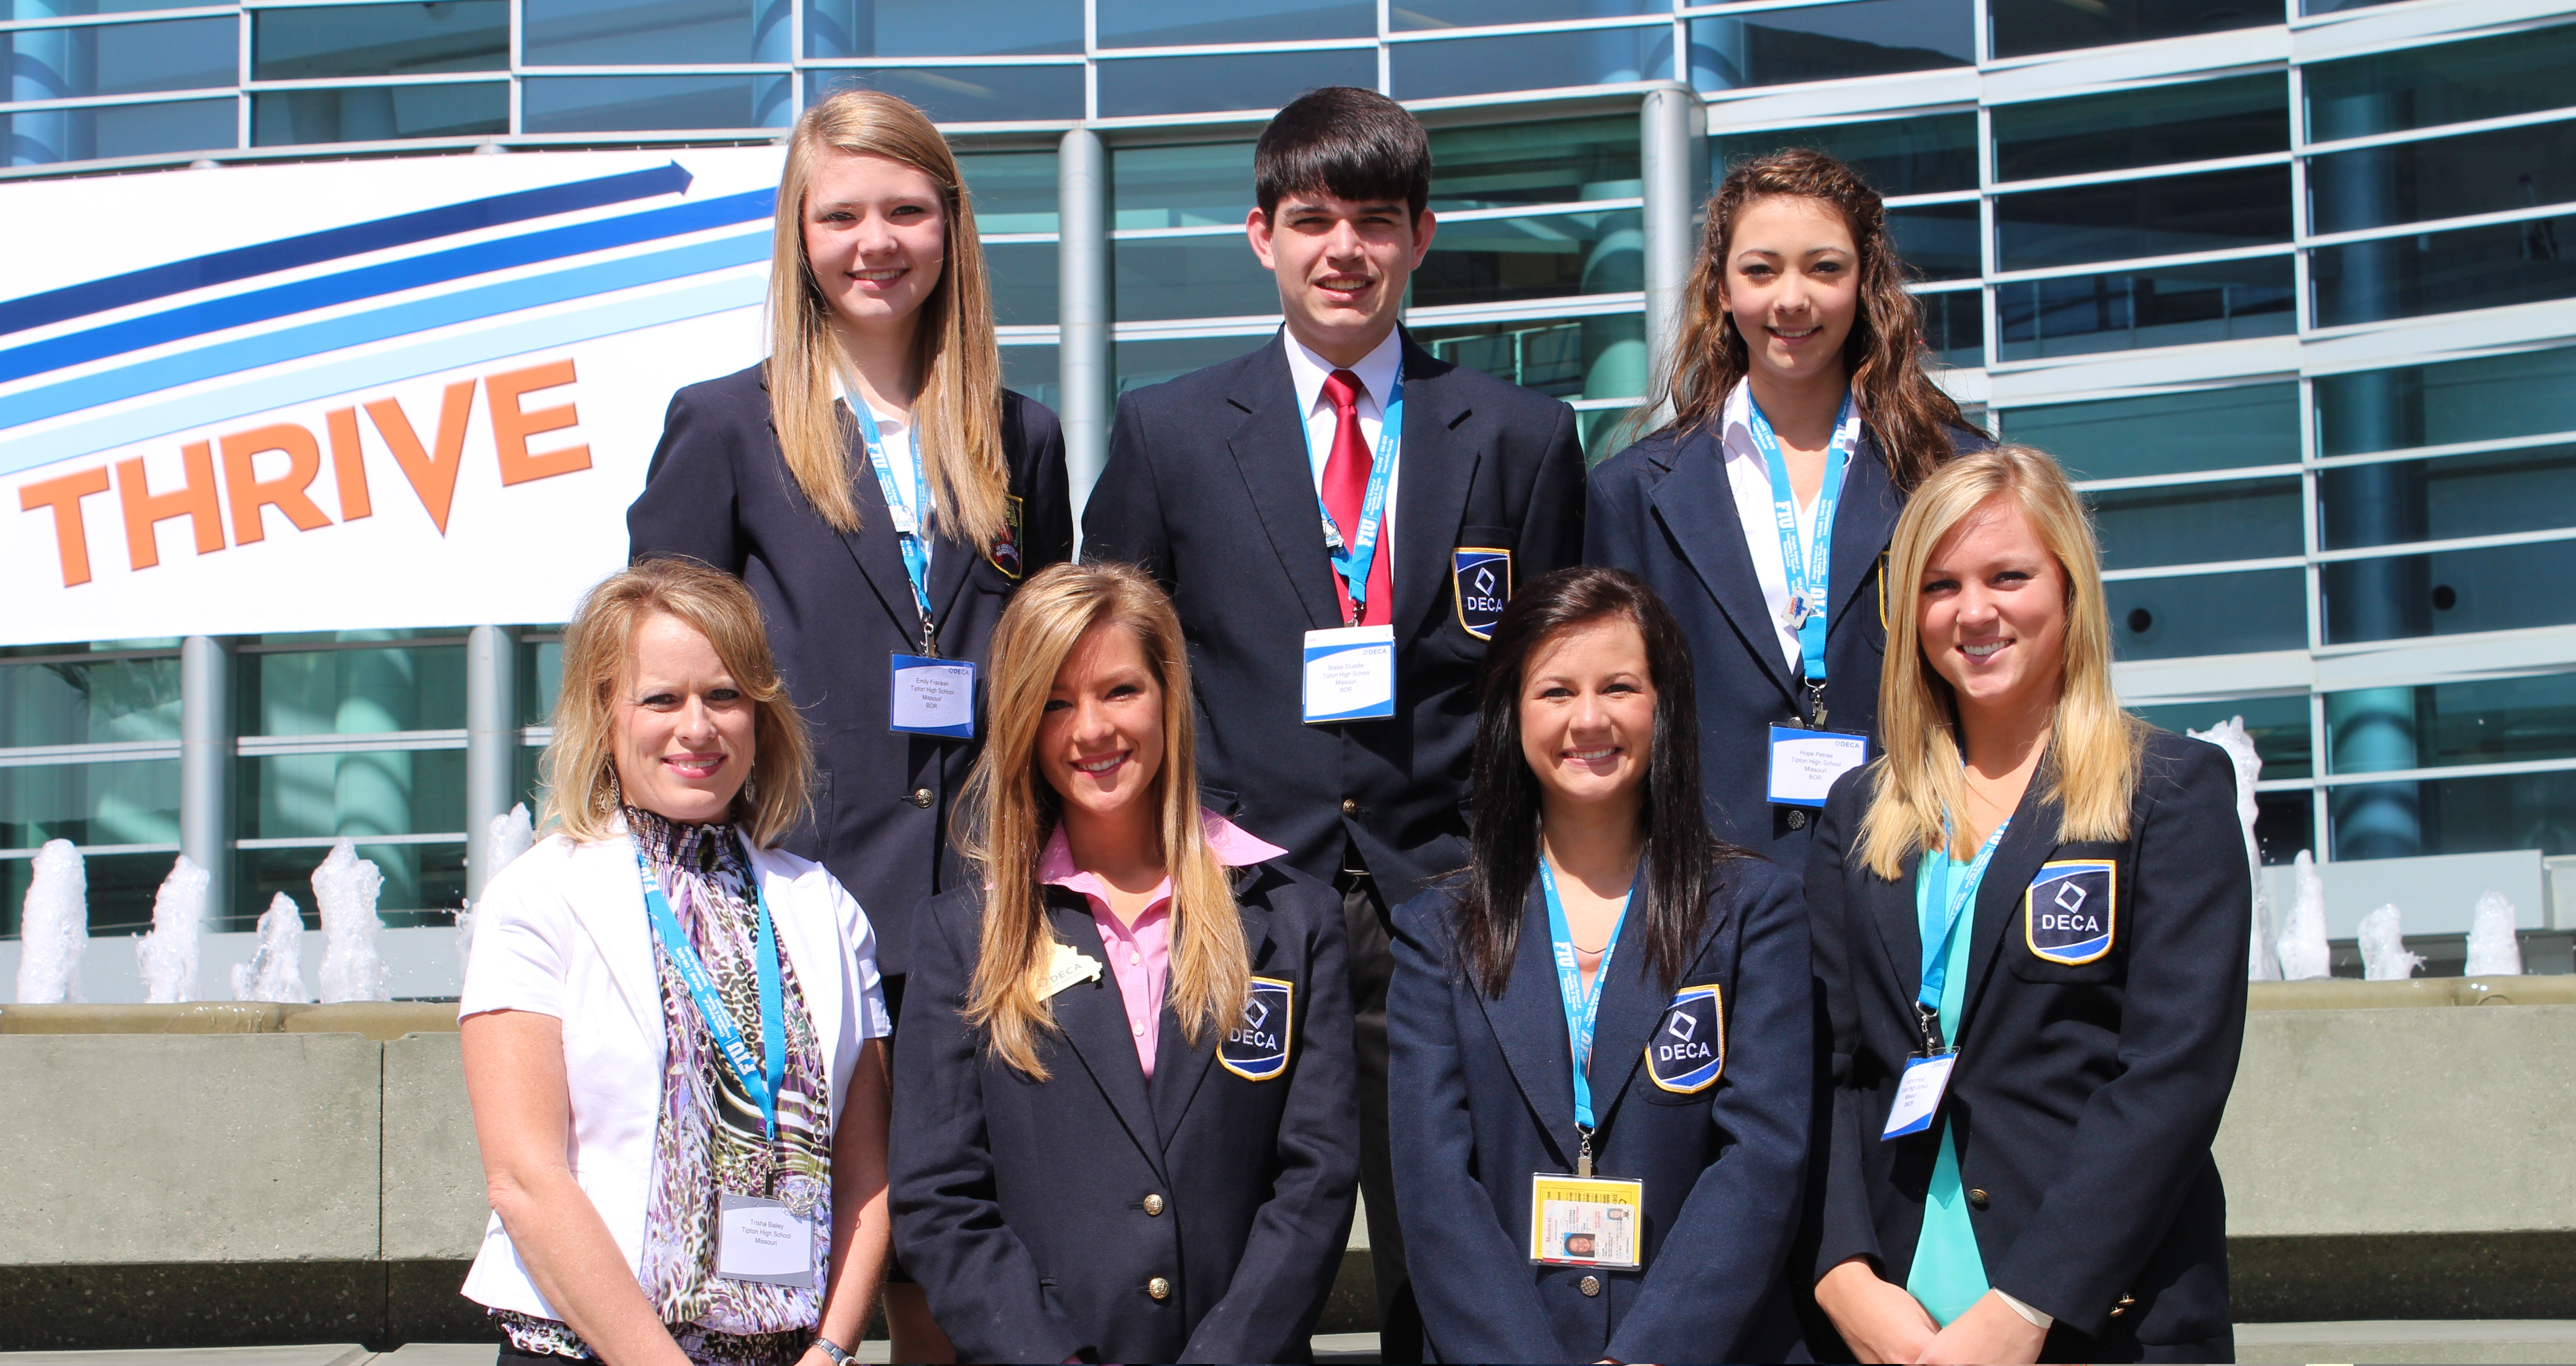 students of deca5